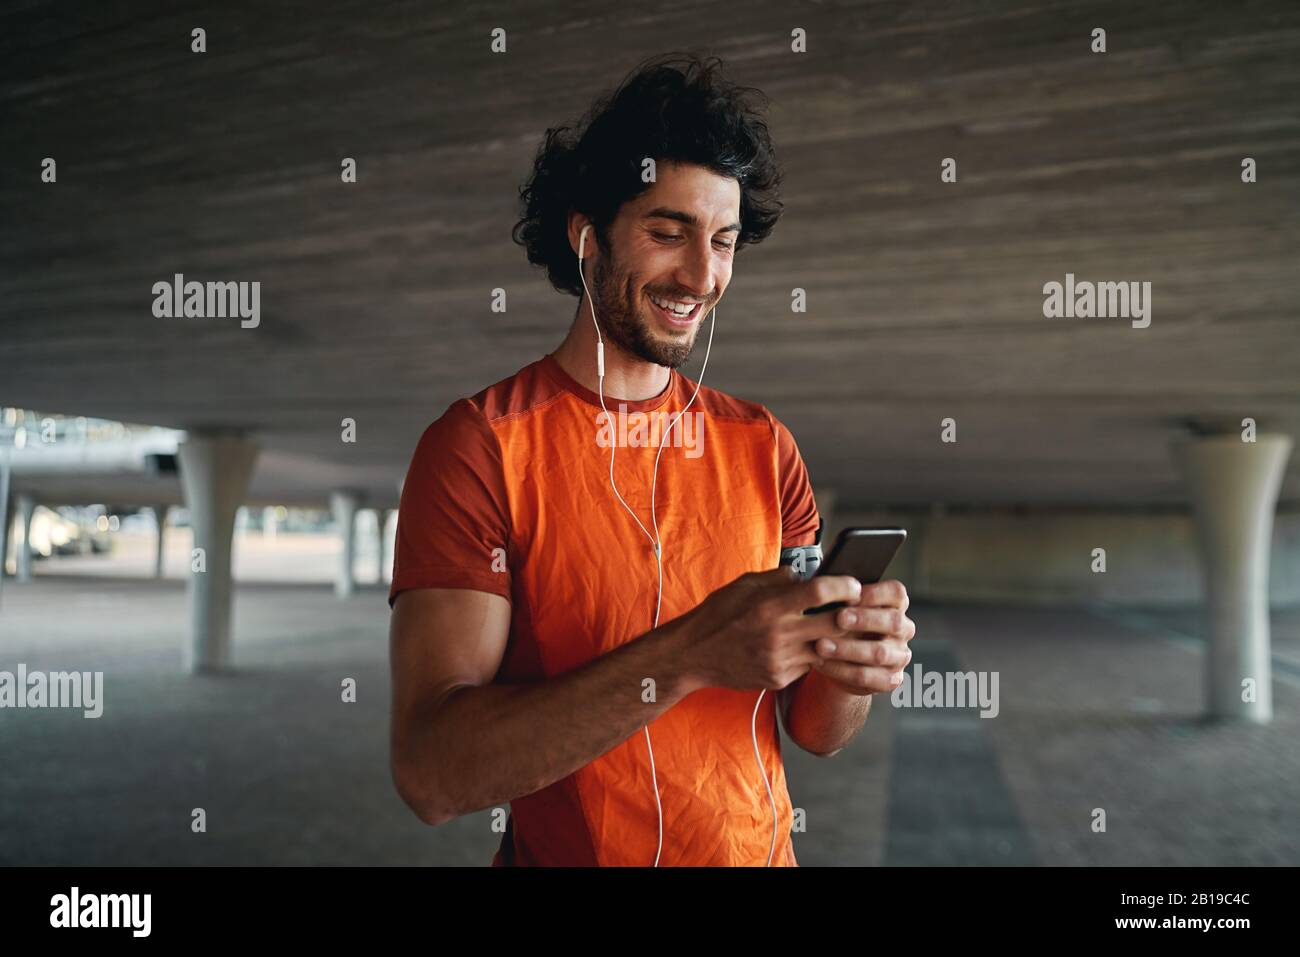 Portrait of a smiling young male runner standing under the concrete bridge with earphone in his ears typing on a smart phone Stock Photo